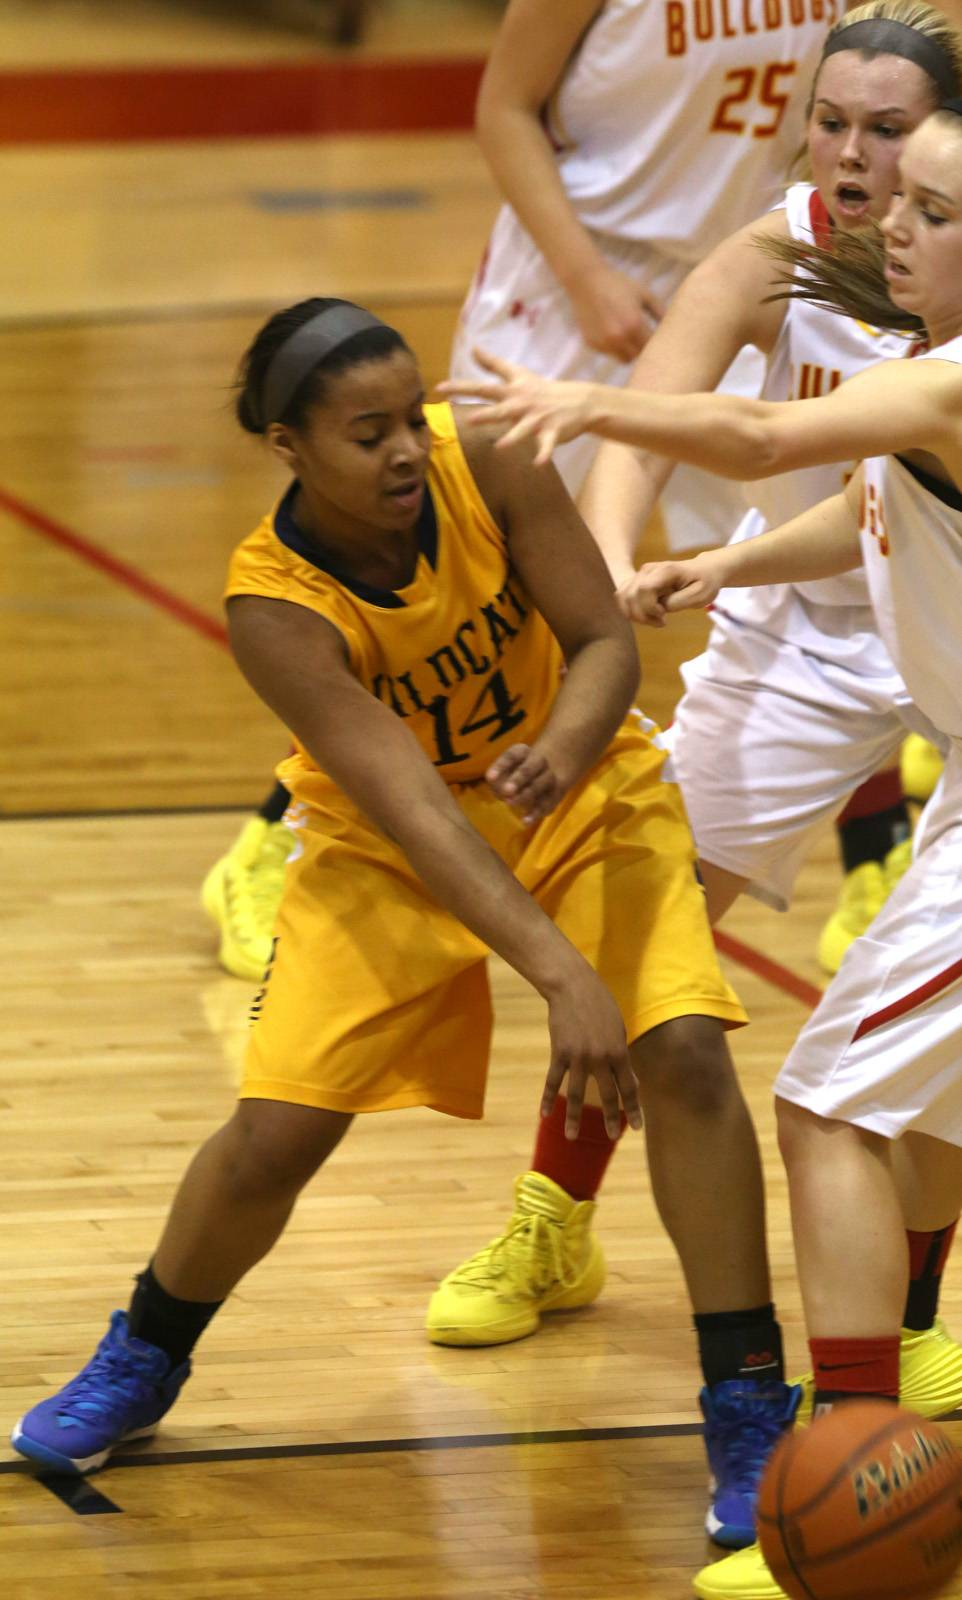 Neuqua Valley's Najee Smith (14) looks to pass inside against battles Batavia during girls basketball action.